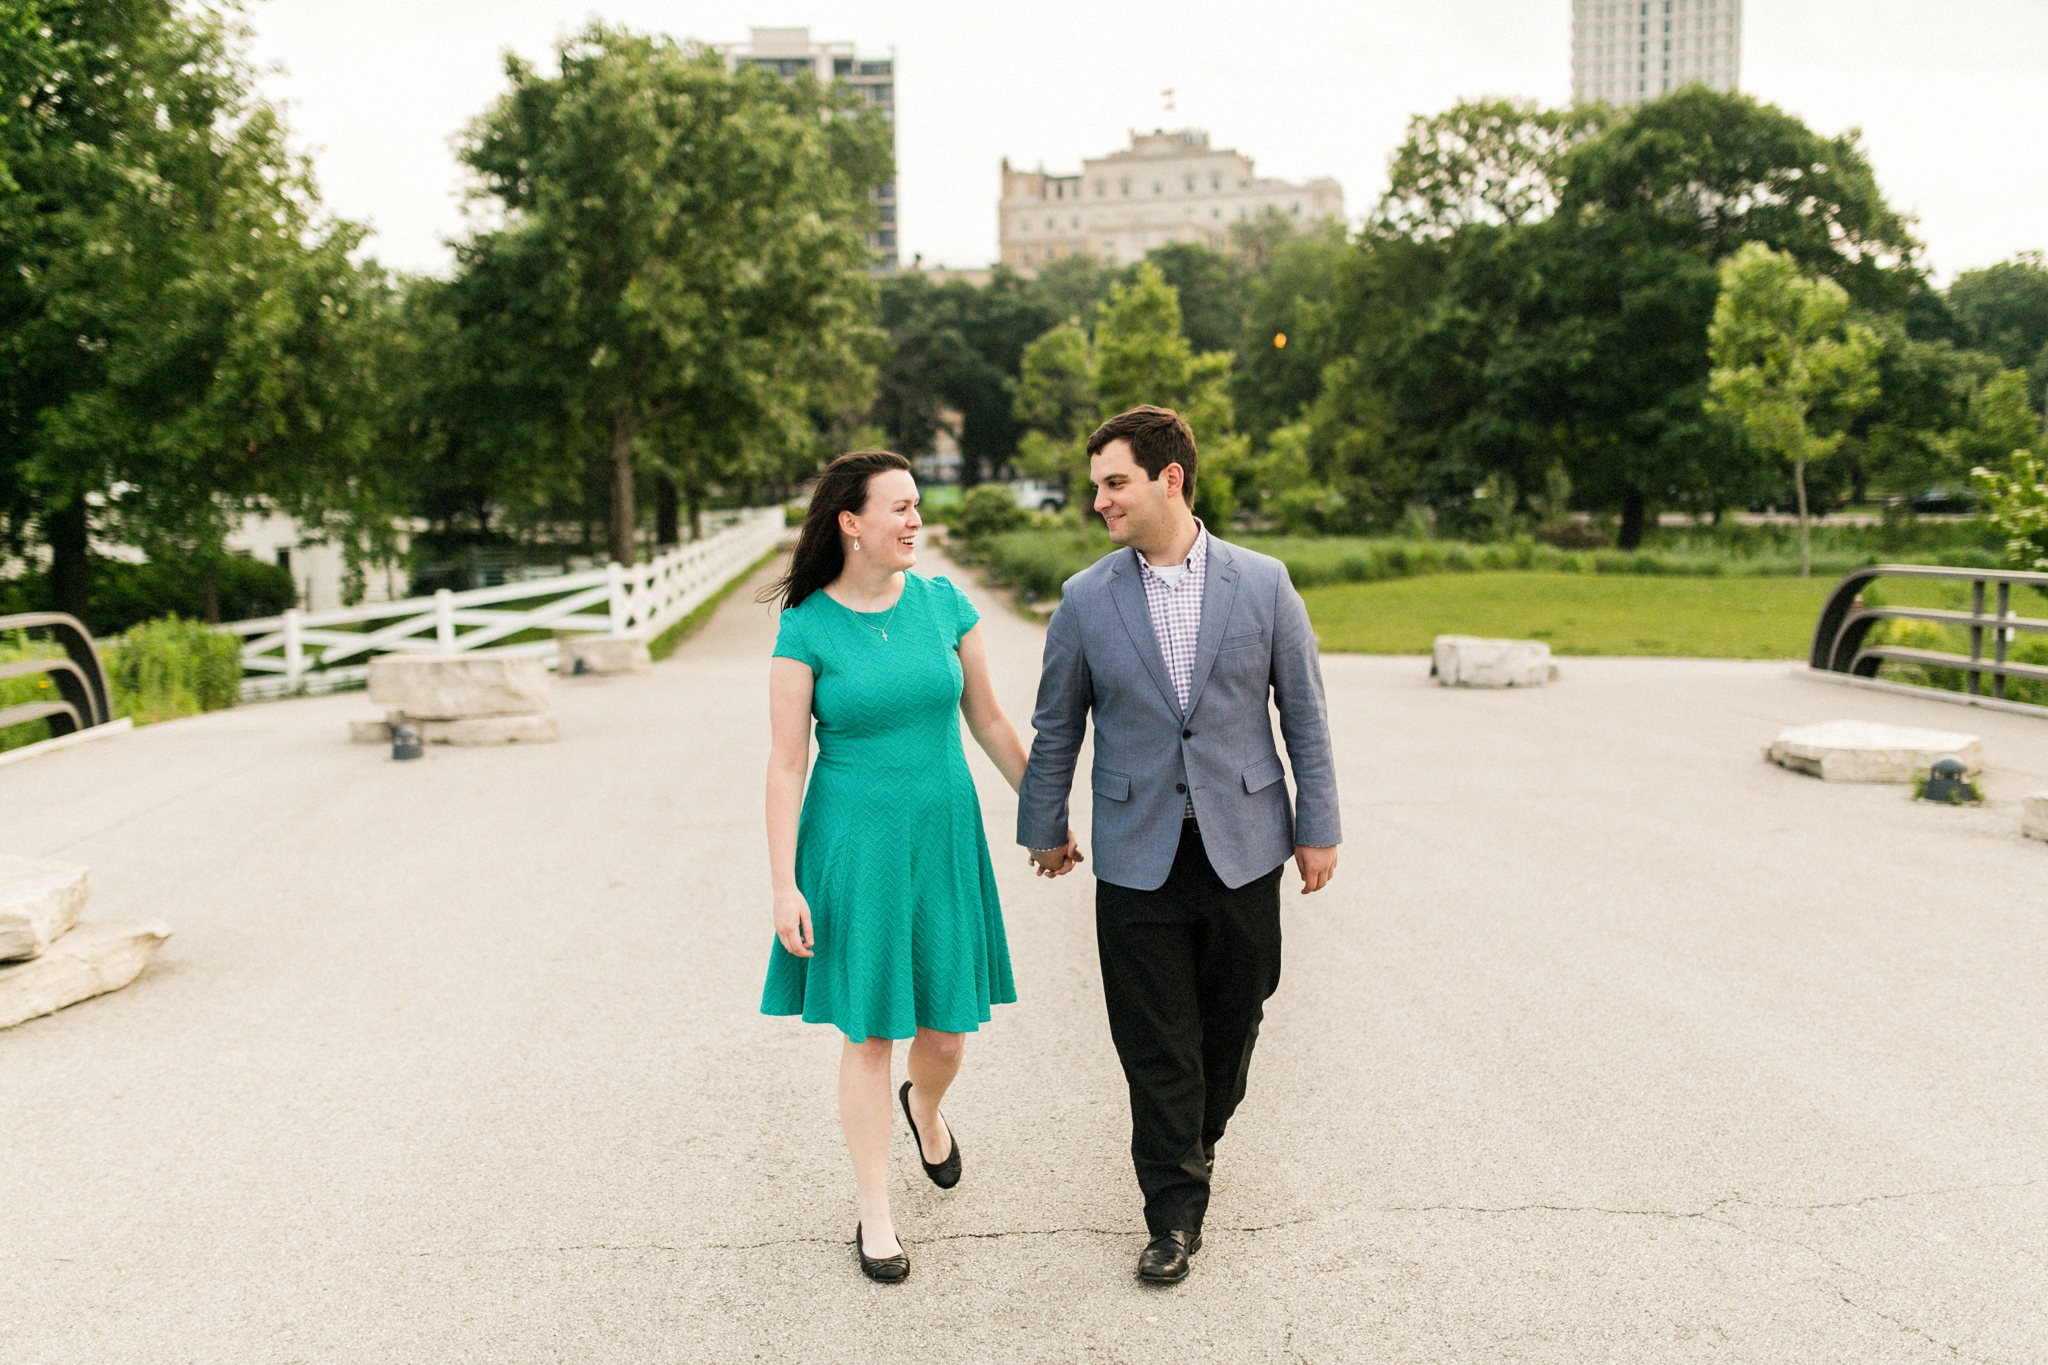 Lincoln_Park_Engagement_Photography-017.jpg